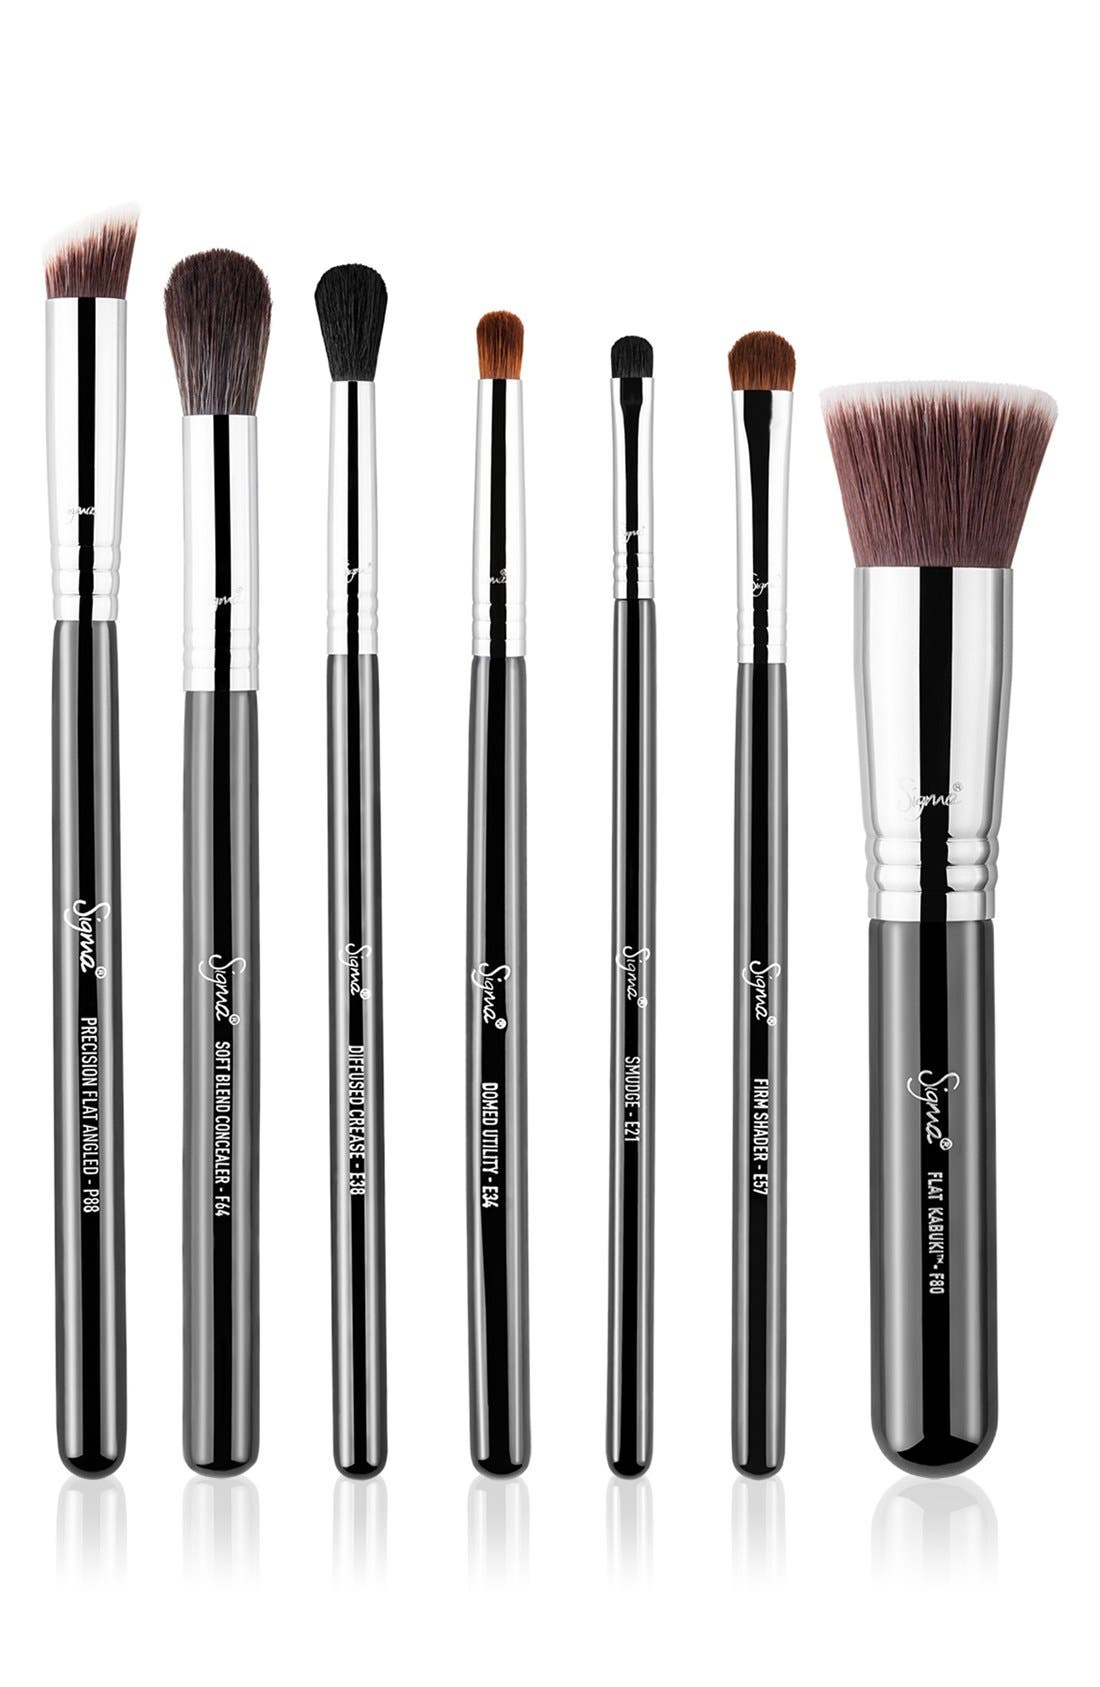 Sigma Beauty Best of Sigma Beauty Brush Kit ($122 Value)